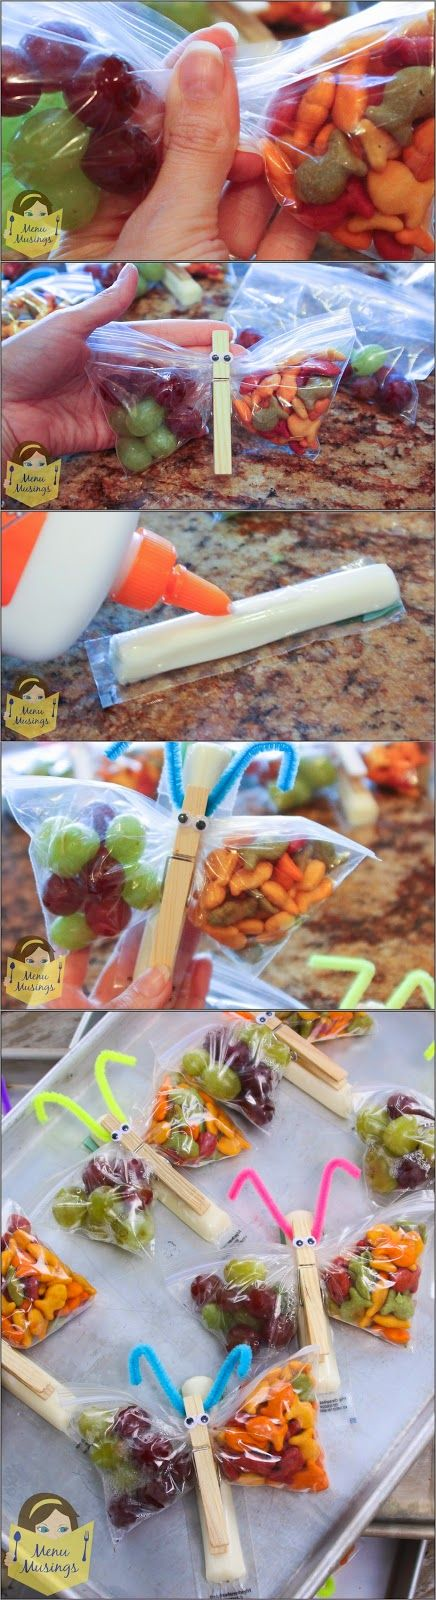 trainer inn restaurant lehighton pa Butterfly Snack Bags   an easy  healthy  and fun classroom snack for your kids  Step by step photos  You are limited only in your imagination  but this one is a balanced snack of cheese  crackers  and fruit